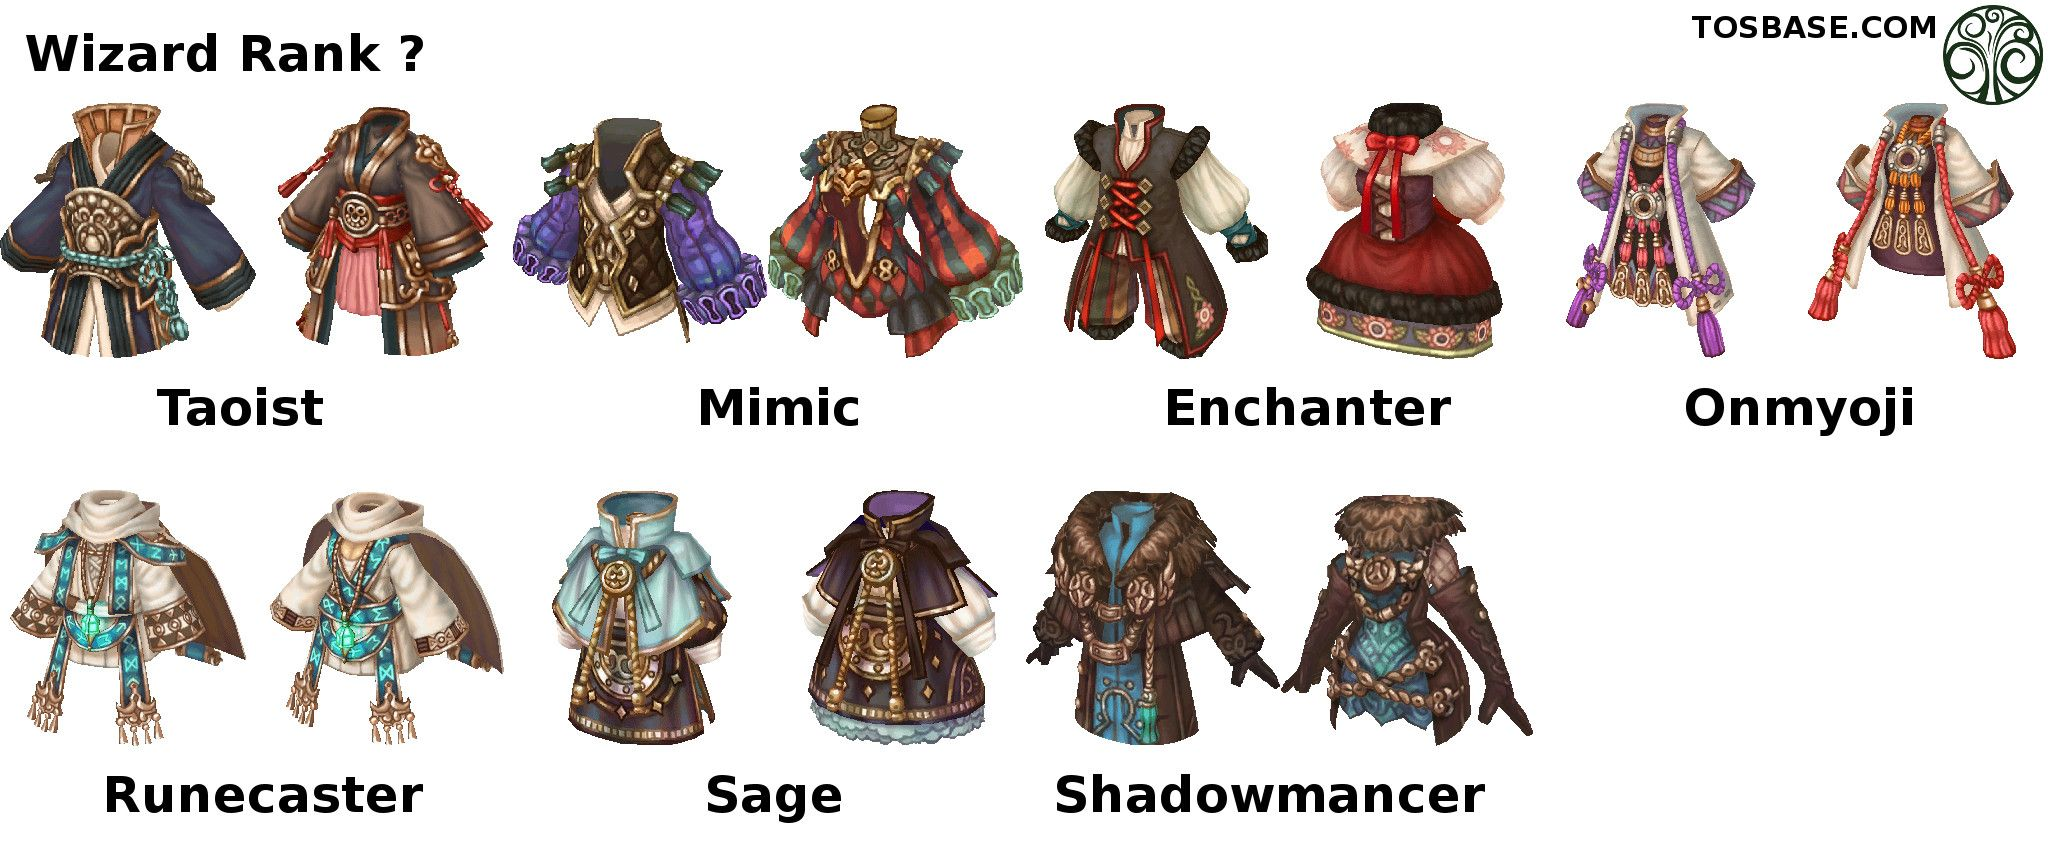 We managed to get the class costume icons of the Rank 7